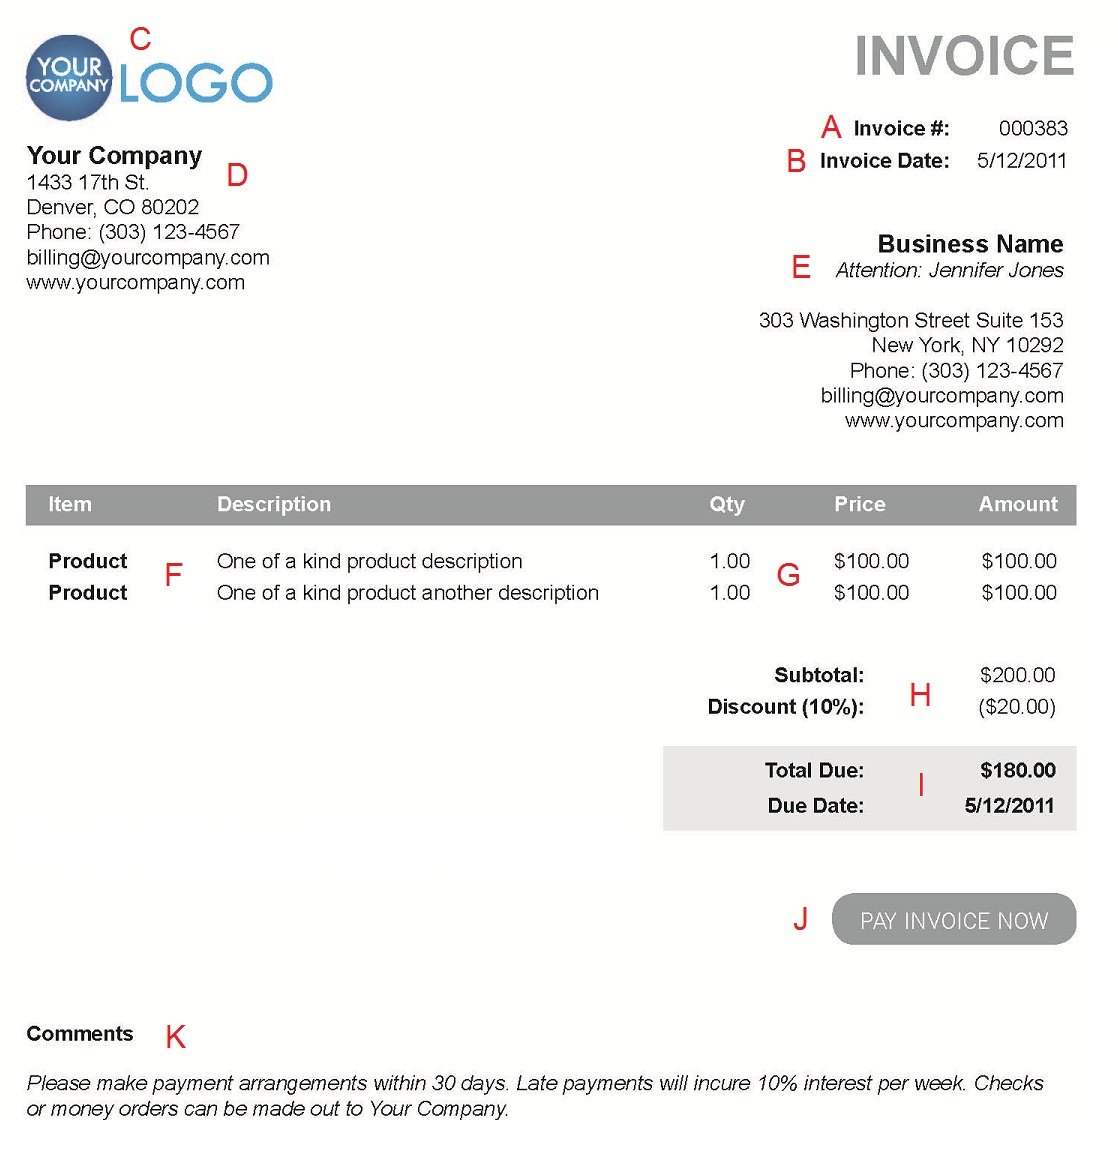 Reliefworkersus  Wonderful The  Different Sections Of An Electronic Payment Invoice With Fetching A  With Cute Invoicing And Billing Software Also Painting Invoice Sample In Addition Simple Service Invoice And Blank Proforma Invoice As Well As Free Downloadable Invoice Template Word Additionally Proform Invoice From Paysimplecom With Reliefworkersus  Fetching The  Different Sections Of An Electronic Payment Invoice With Cute A  And Wonderful Invoicing And Billing Software Also Painting Invoice Sample In Addition Simple Service Invoice From Paysimplecom